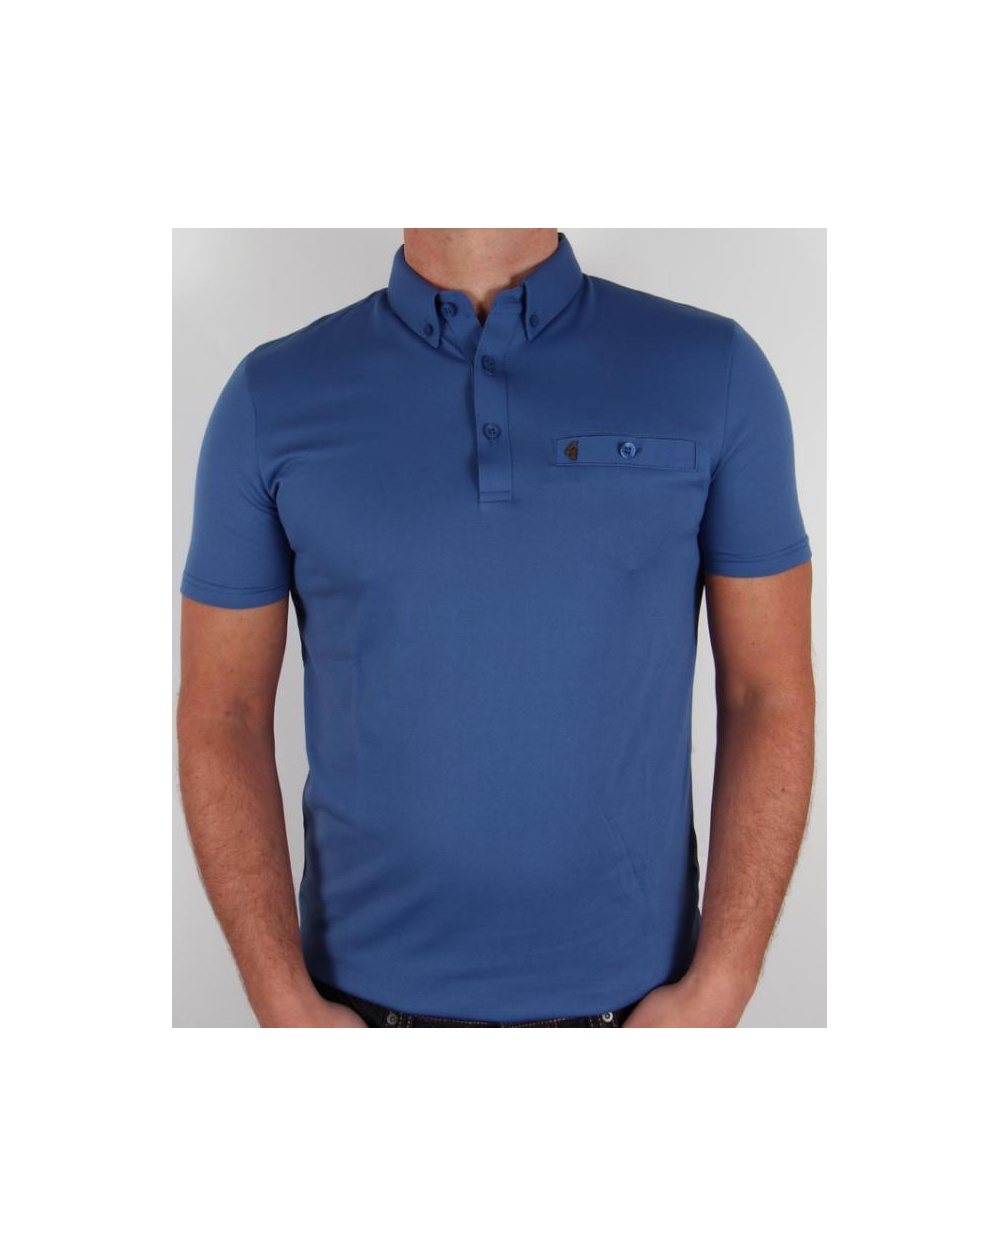 Gabicci Vintage Button Down Collar Polo Shirt Royal Blue